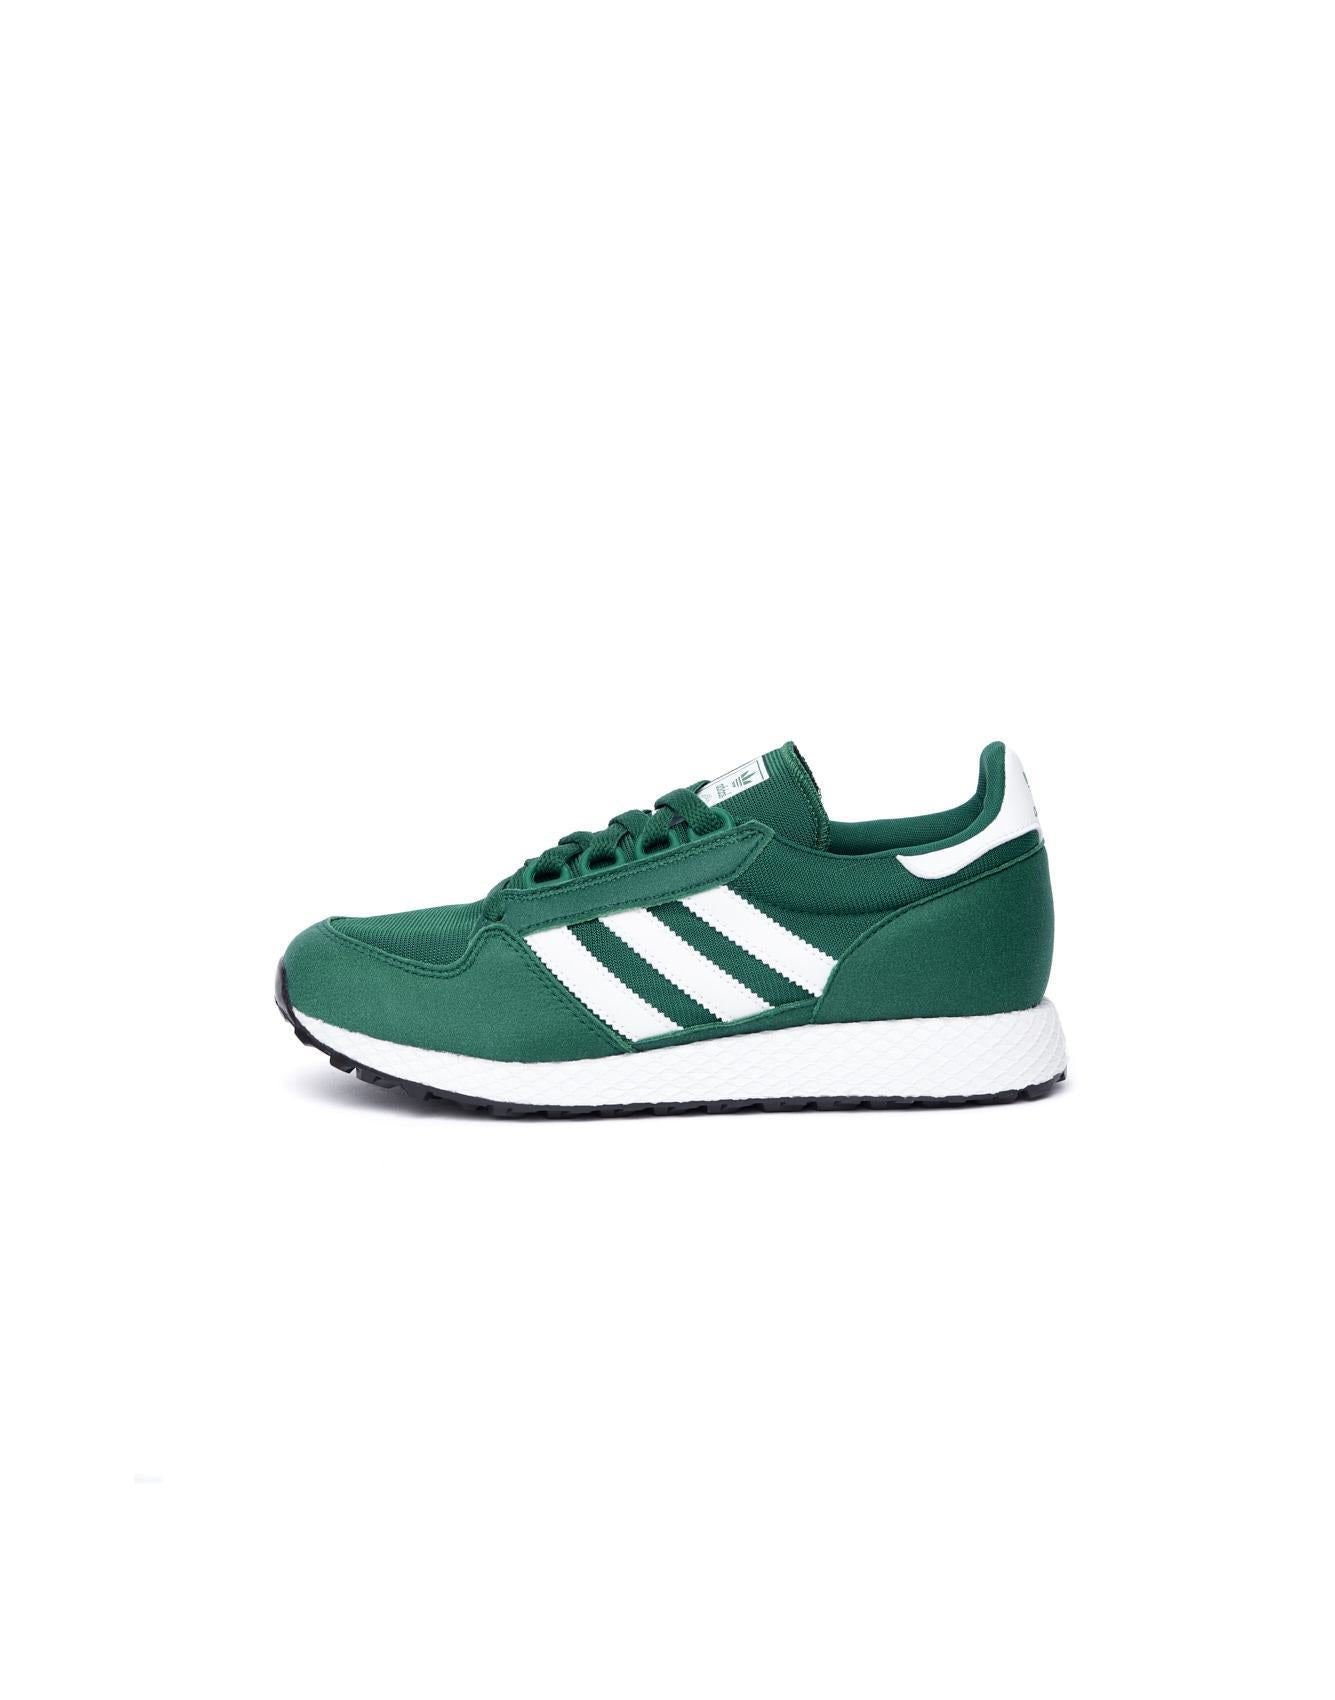 brand new 35287 8ddd7 Adidas green Forest Grove suede and nylon shoes for kids available at  Bellerose